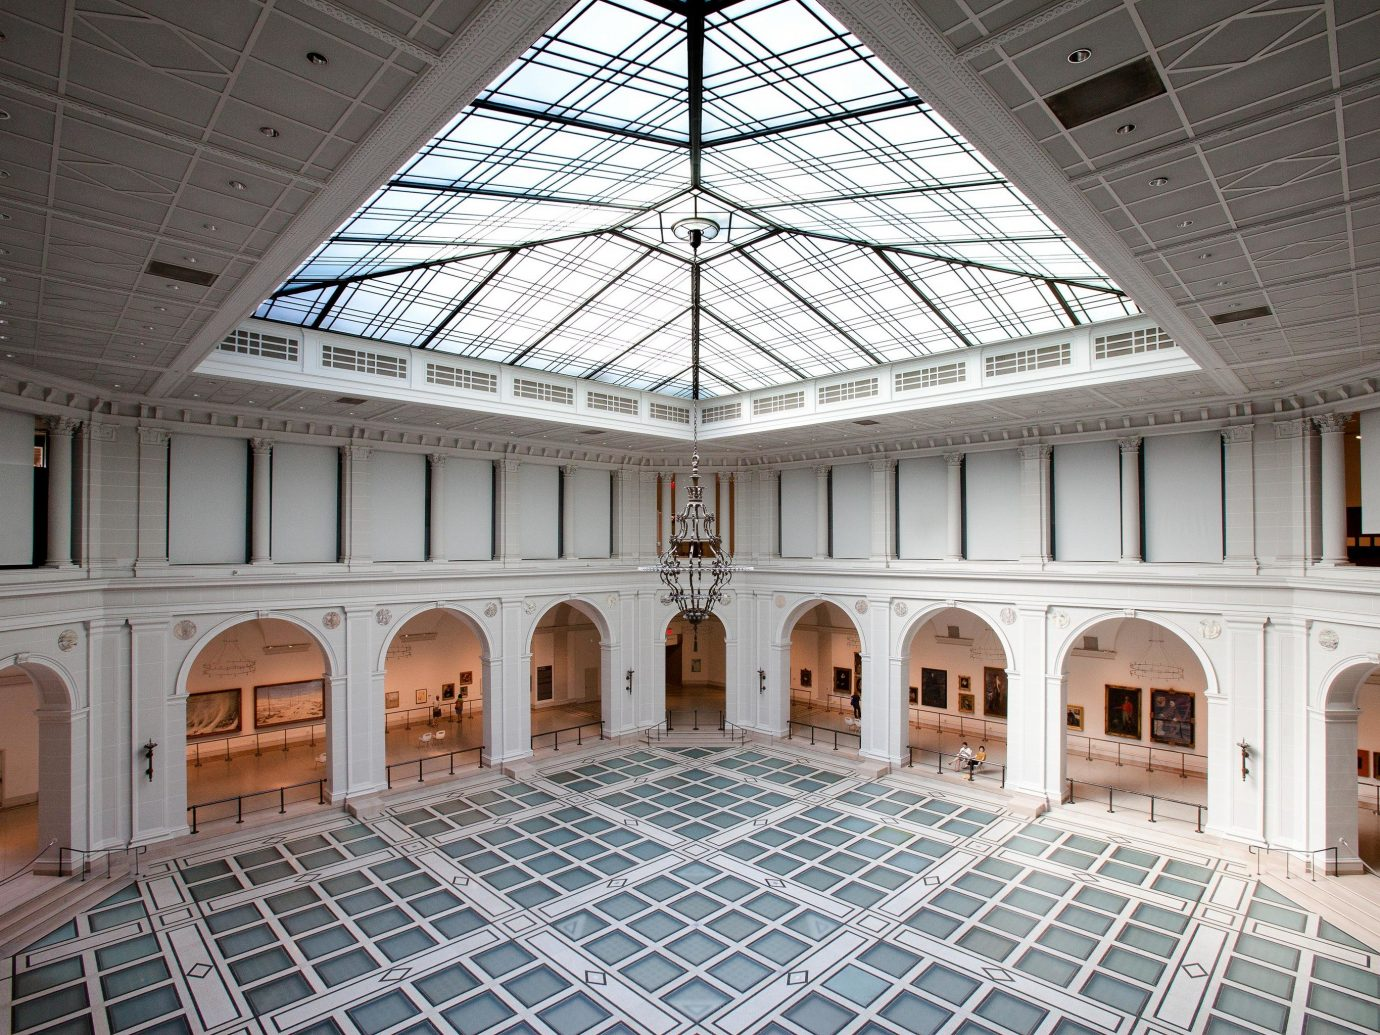 Interior atrium at Brooklyn Museum